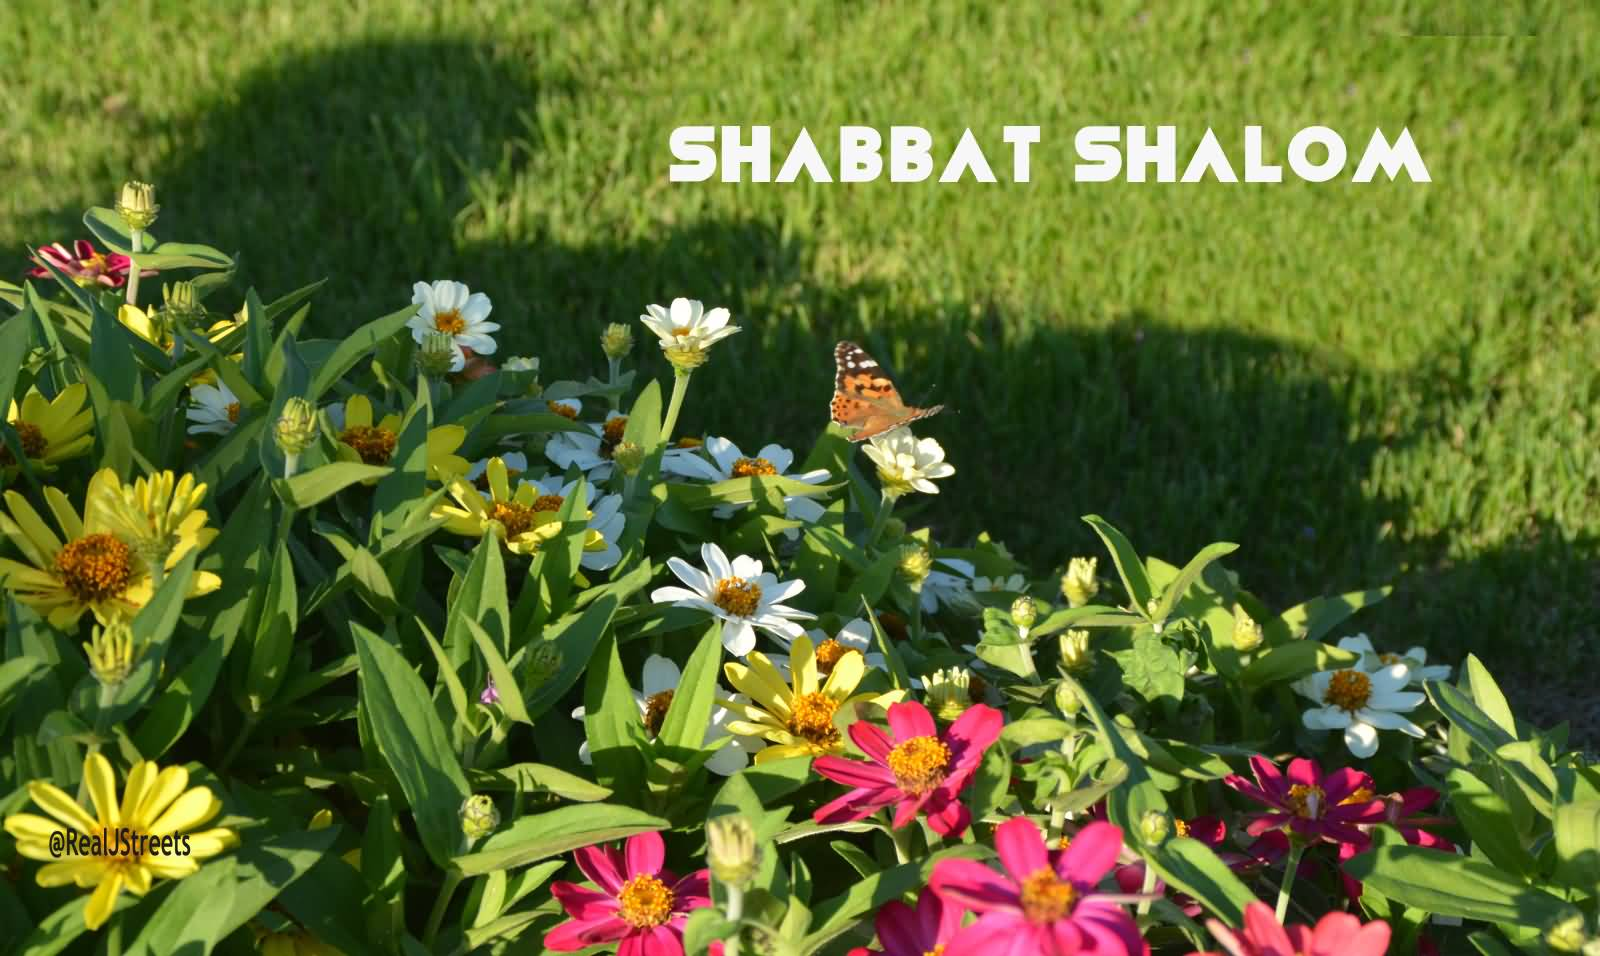 50 beautiful shabbat shalom greeting pictures and photos shabbat shalom greetings flowers picture kristyandbryce Image collections